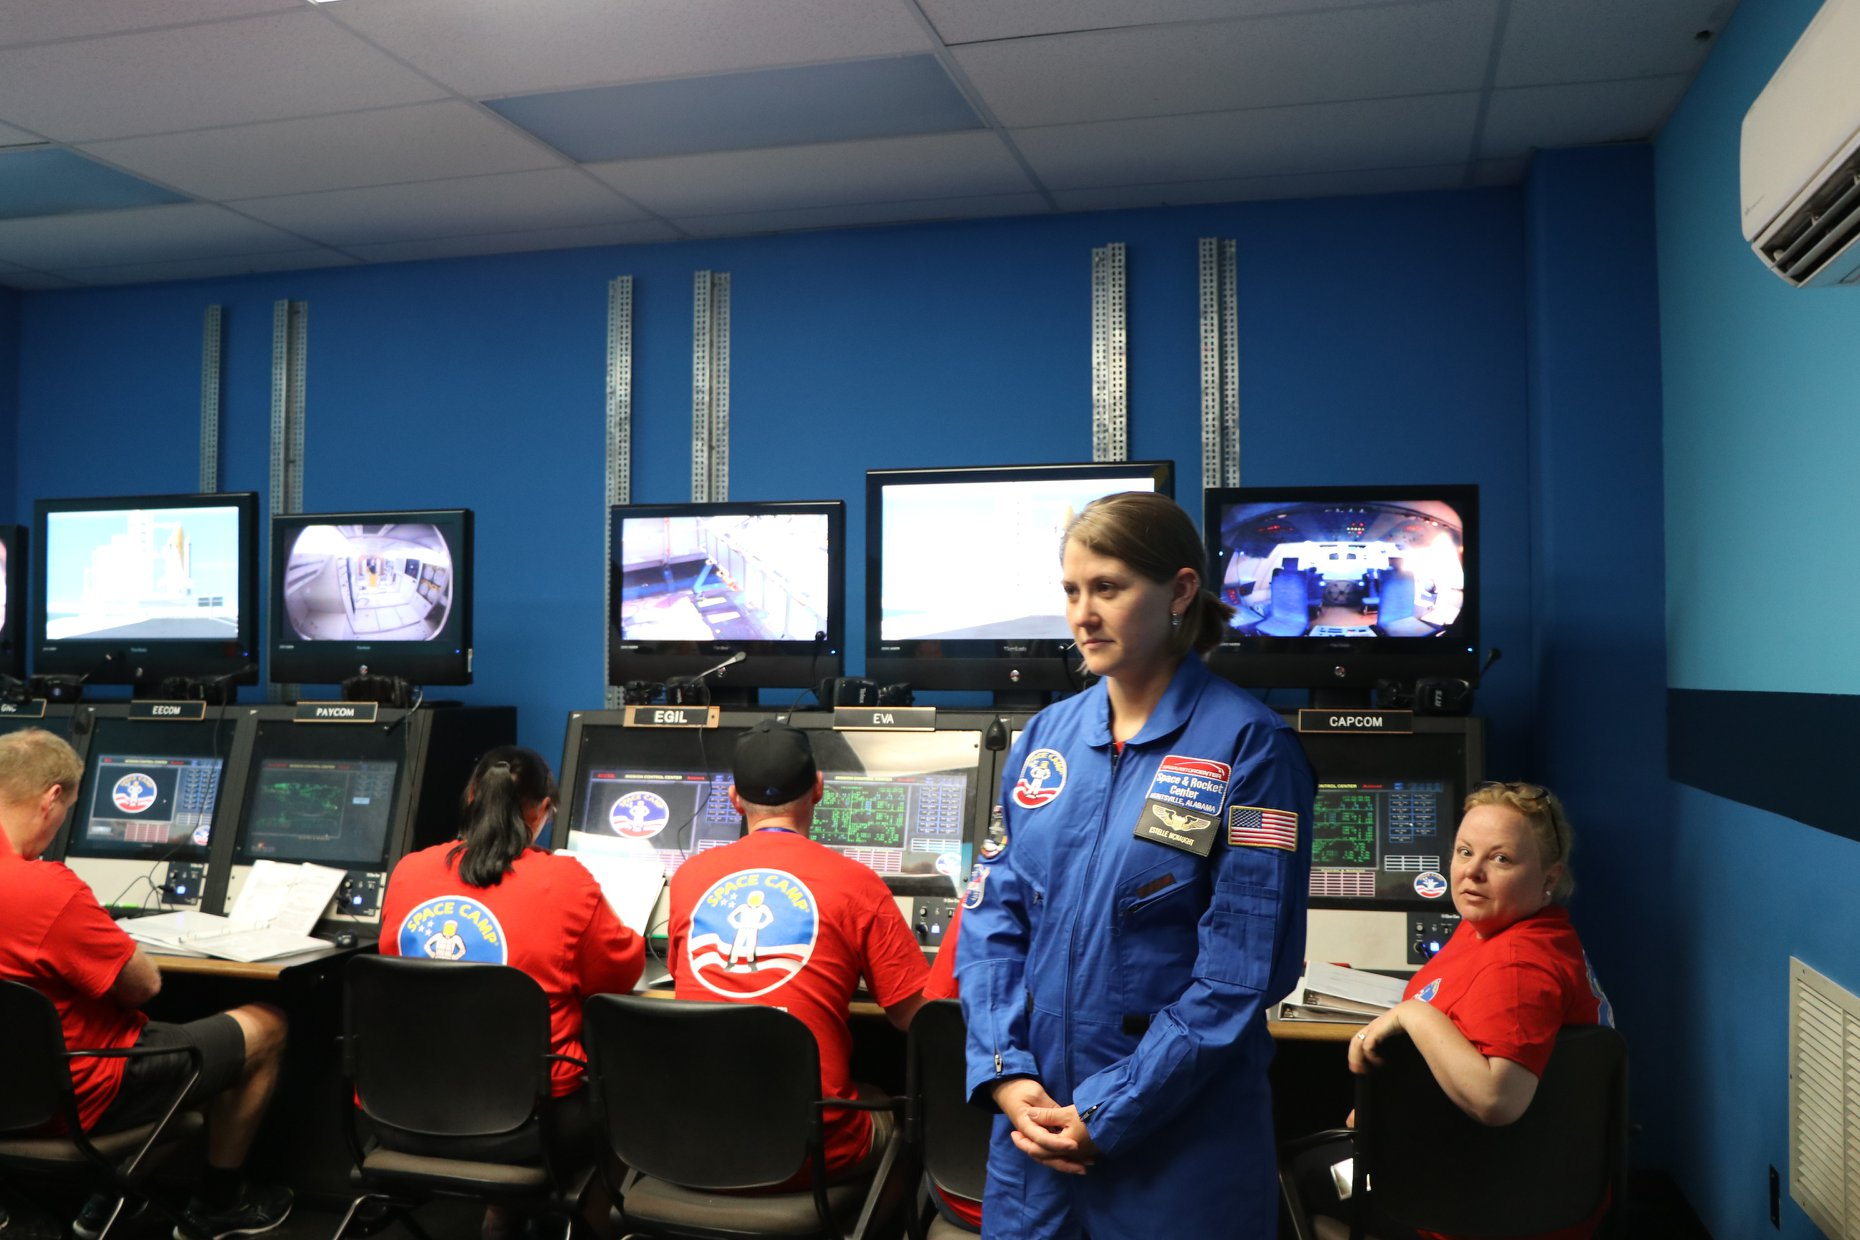 Space Camp 2018 – Day 5 Travel to Space Camp in Huntsville, AL